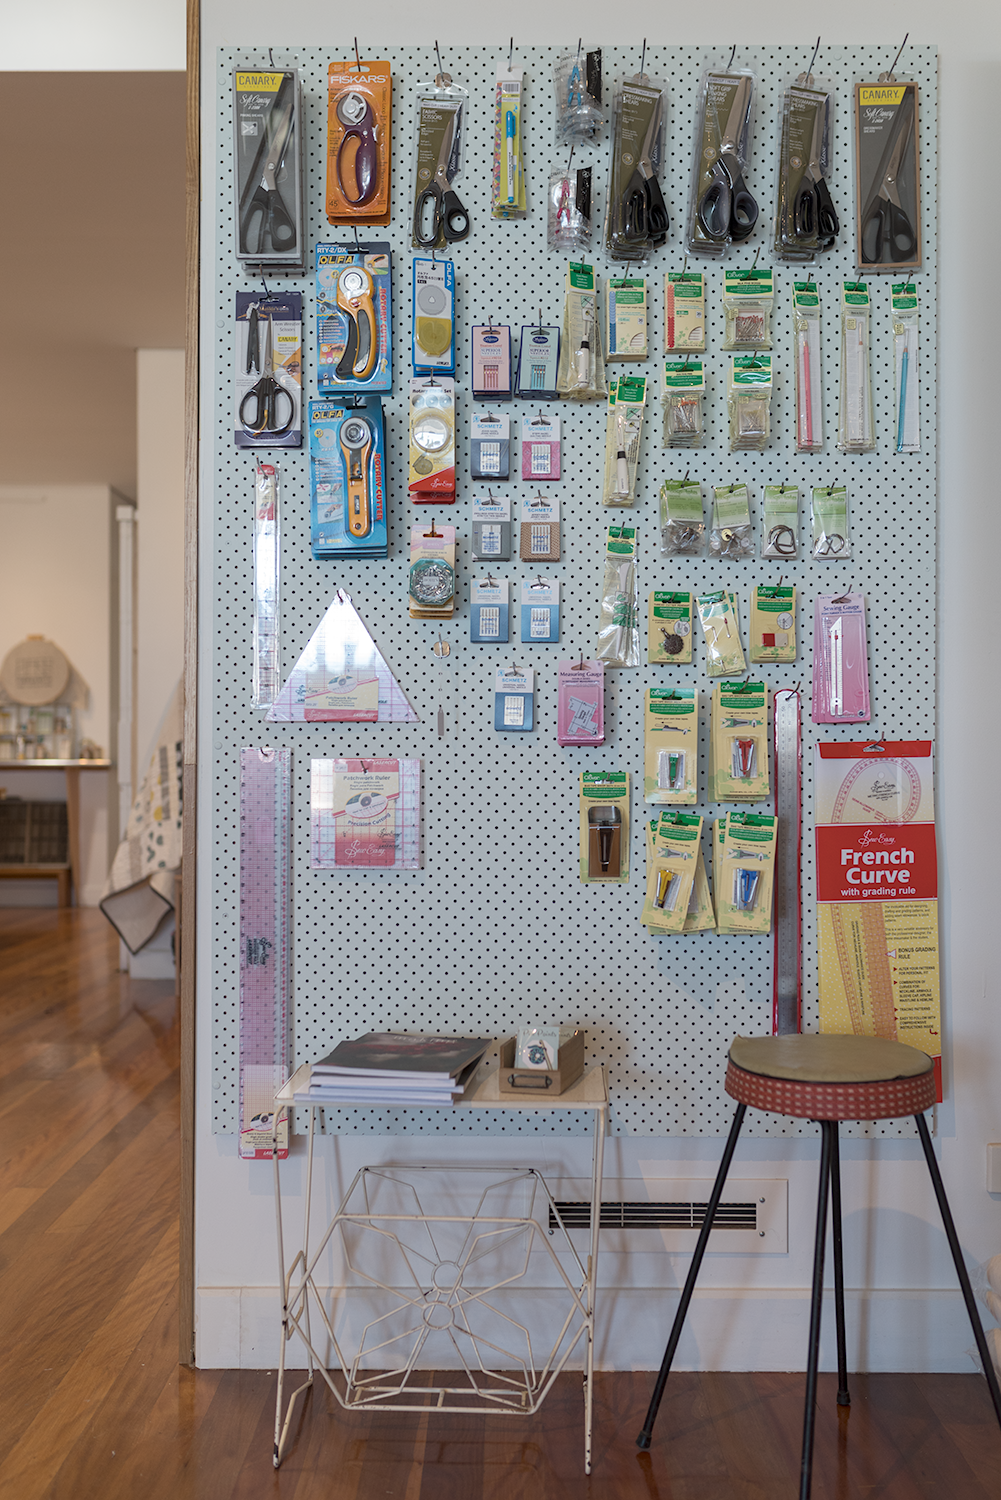 Pinboard of goodness, with lots of Clover products.Photo by Susan Fitzgerald.